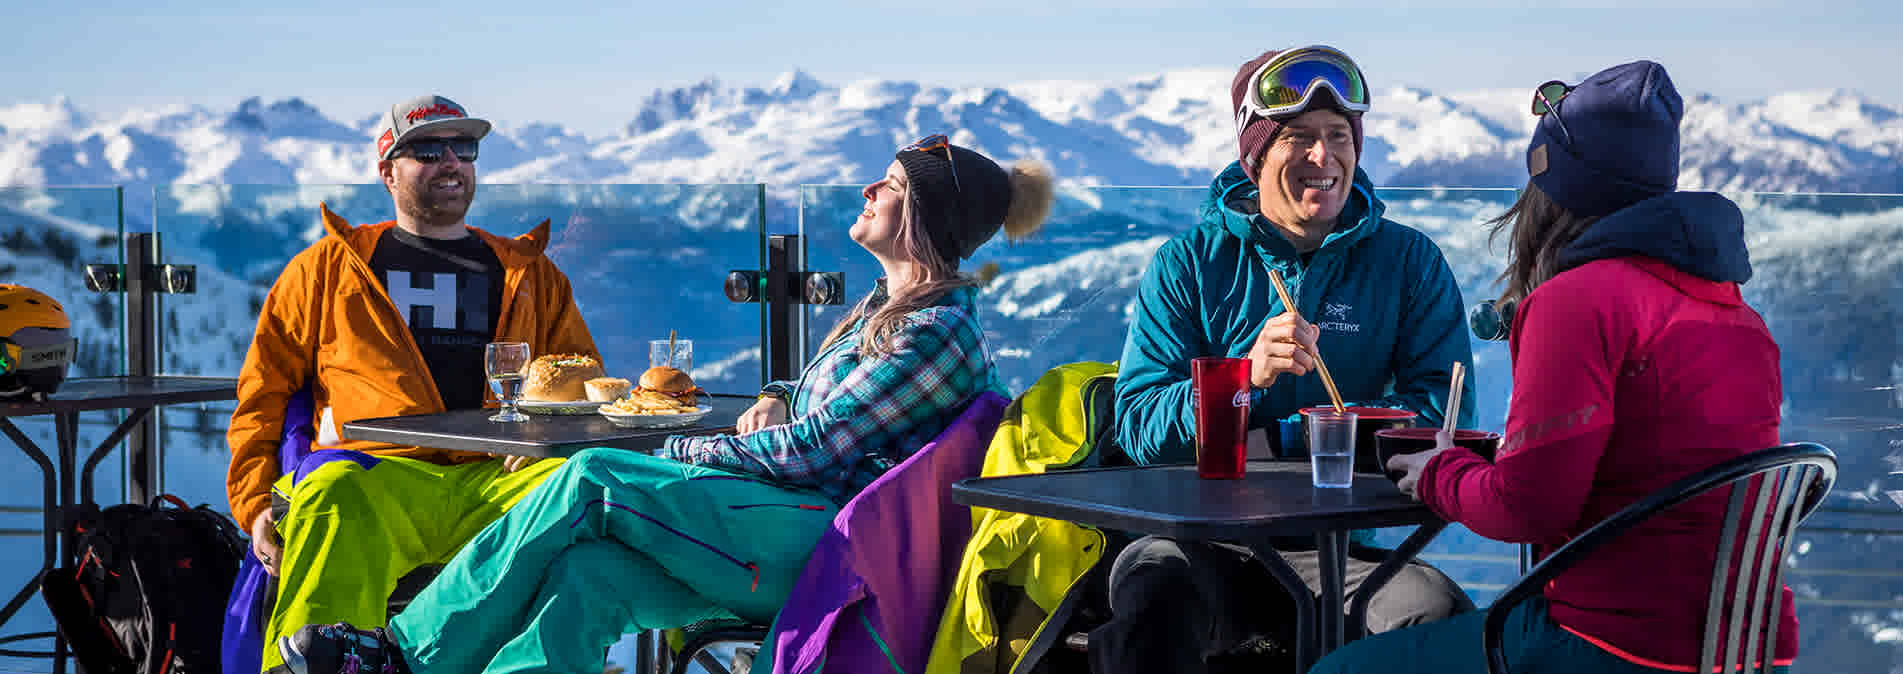 Spring patio time at Whistler Blackcomb, Whistler BC, Canada